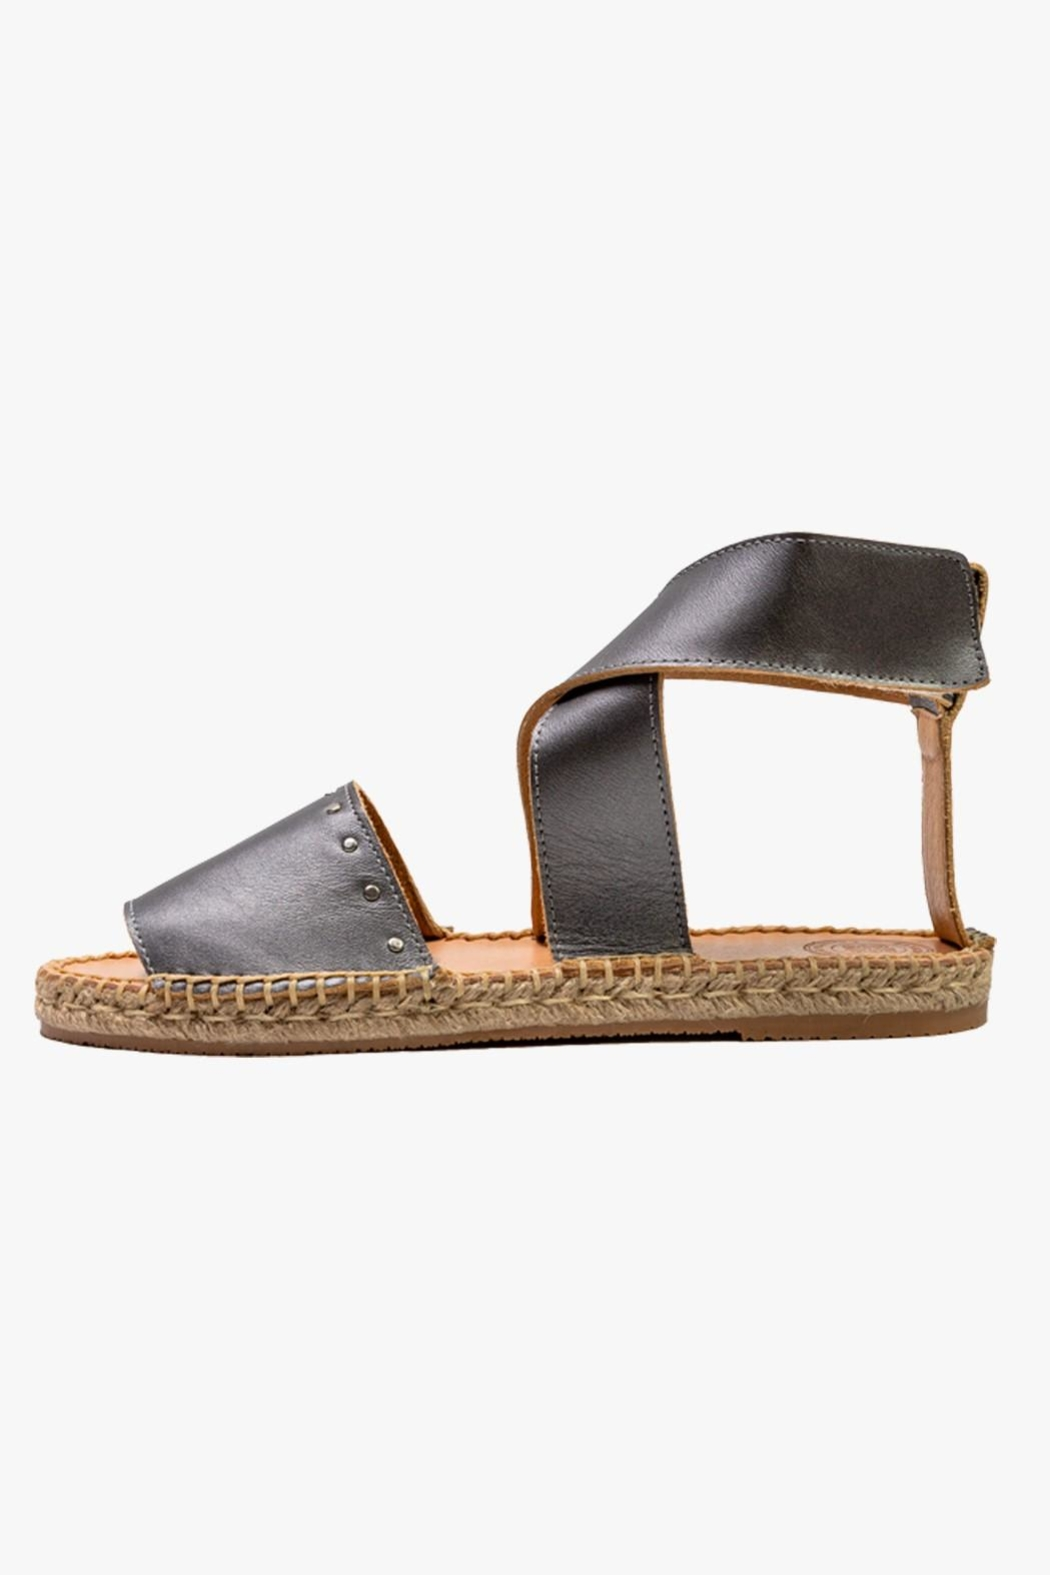 Morkas Shoes Grey Leather Ankle Strap Espadrilles - Main Image